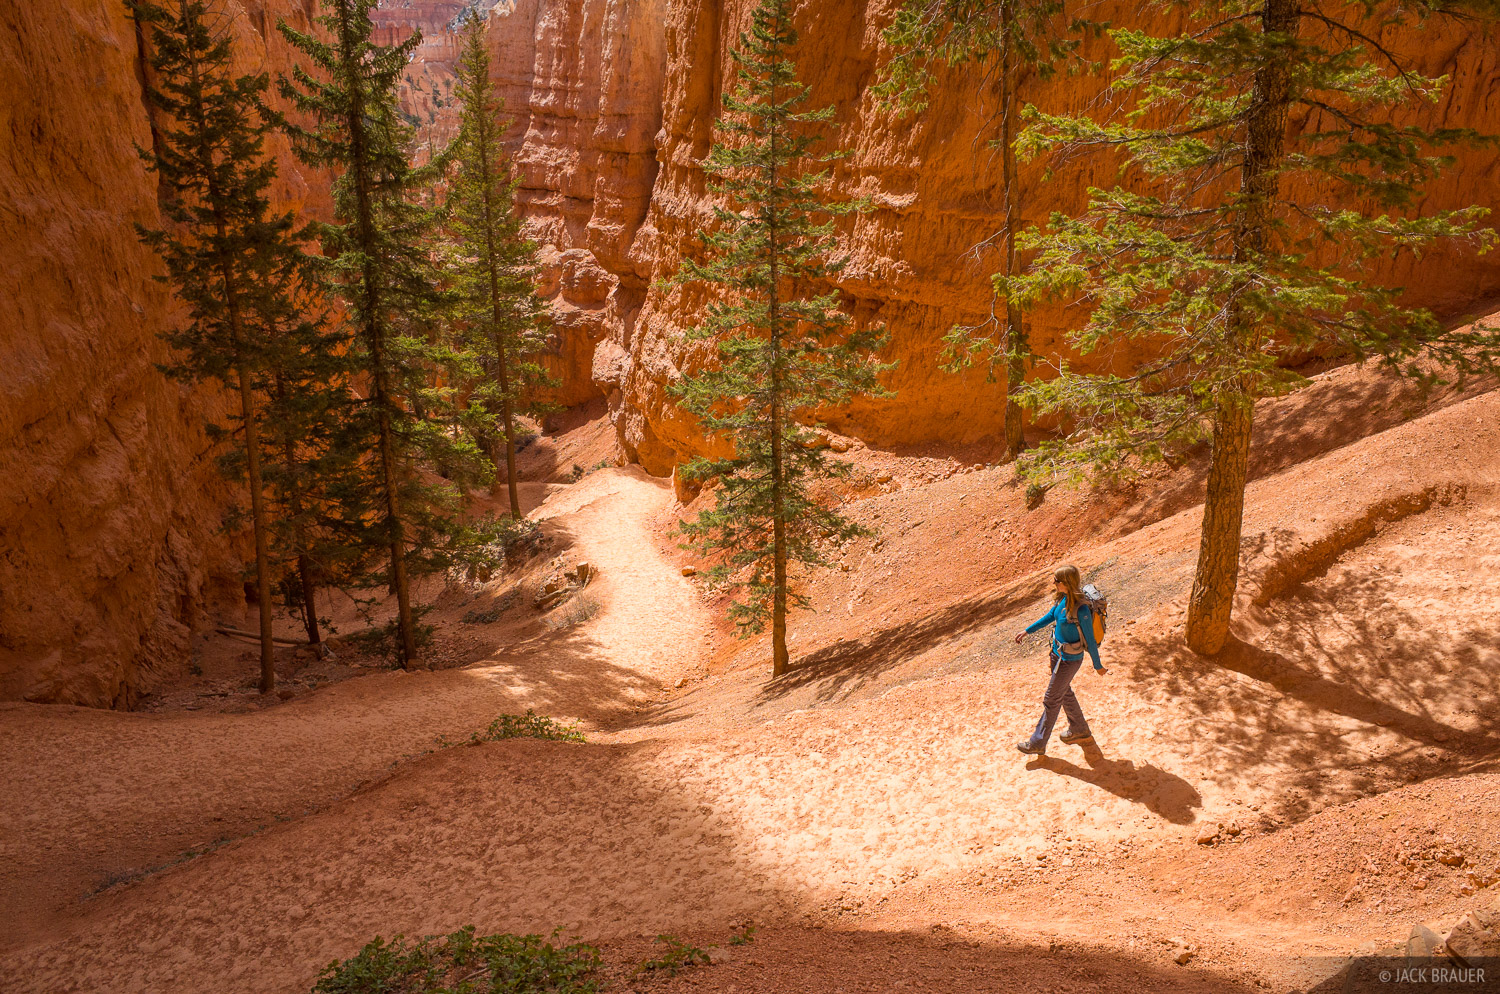 Hiking the Navajo Loop Trail in Bryce Canyon National Park.